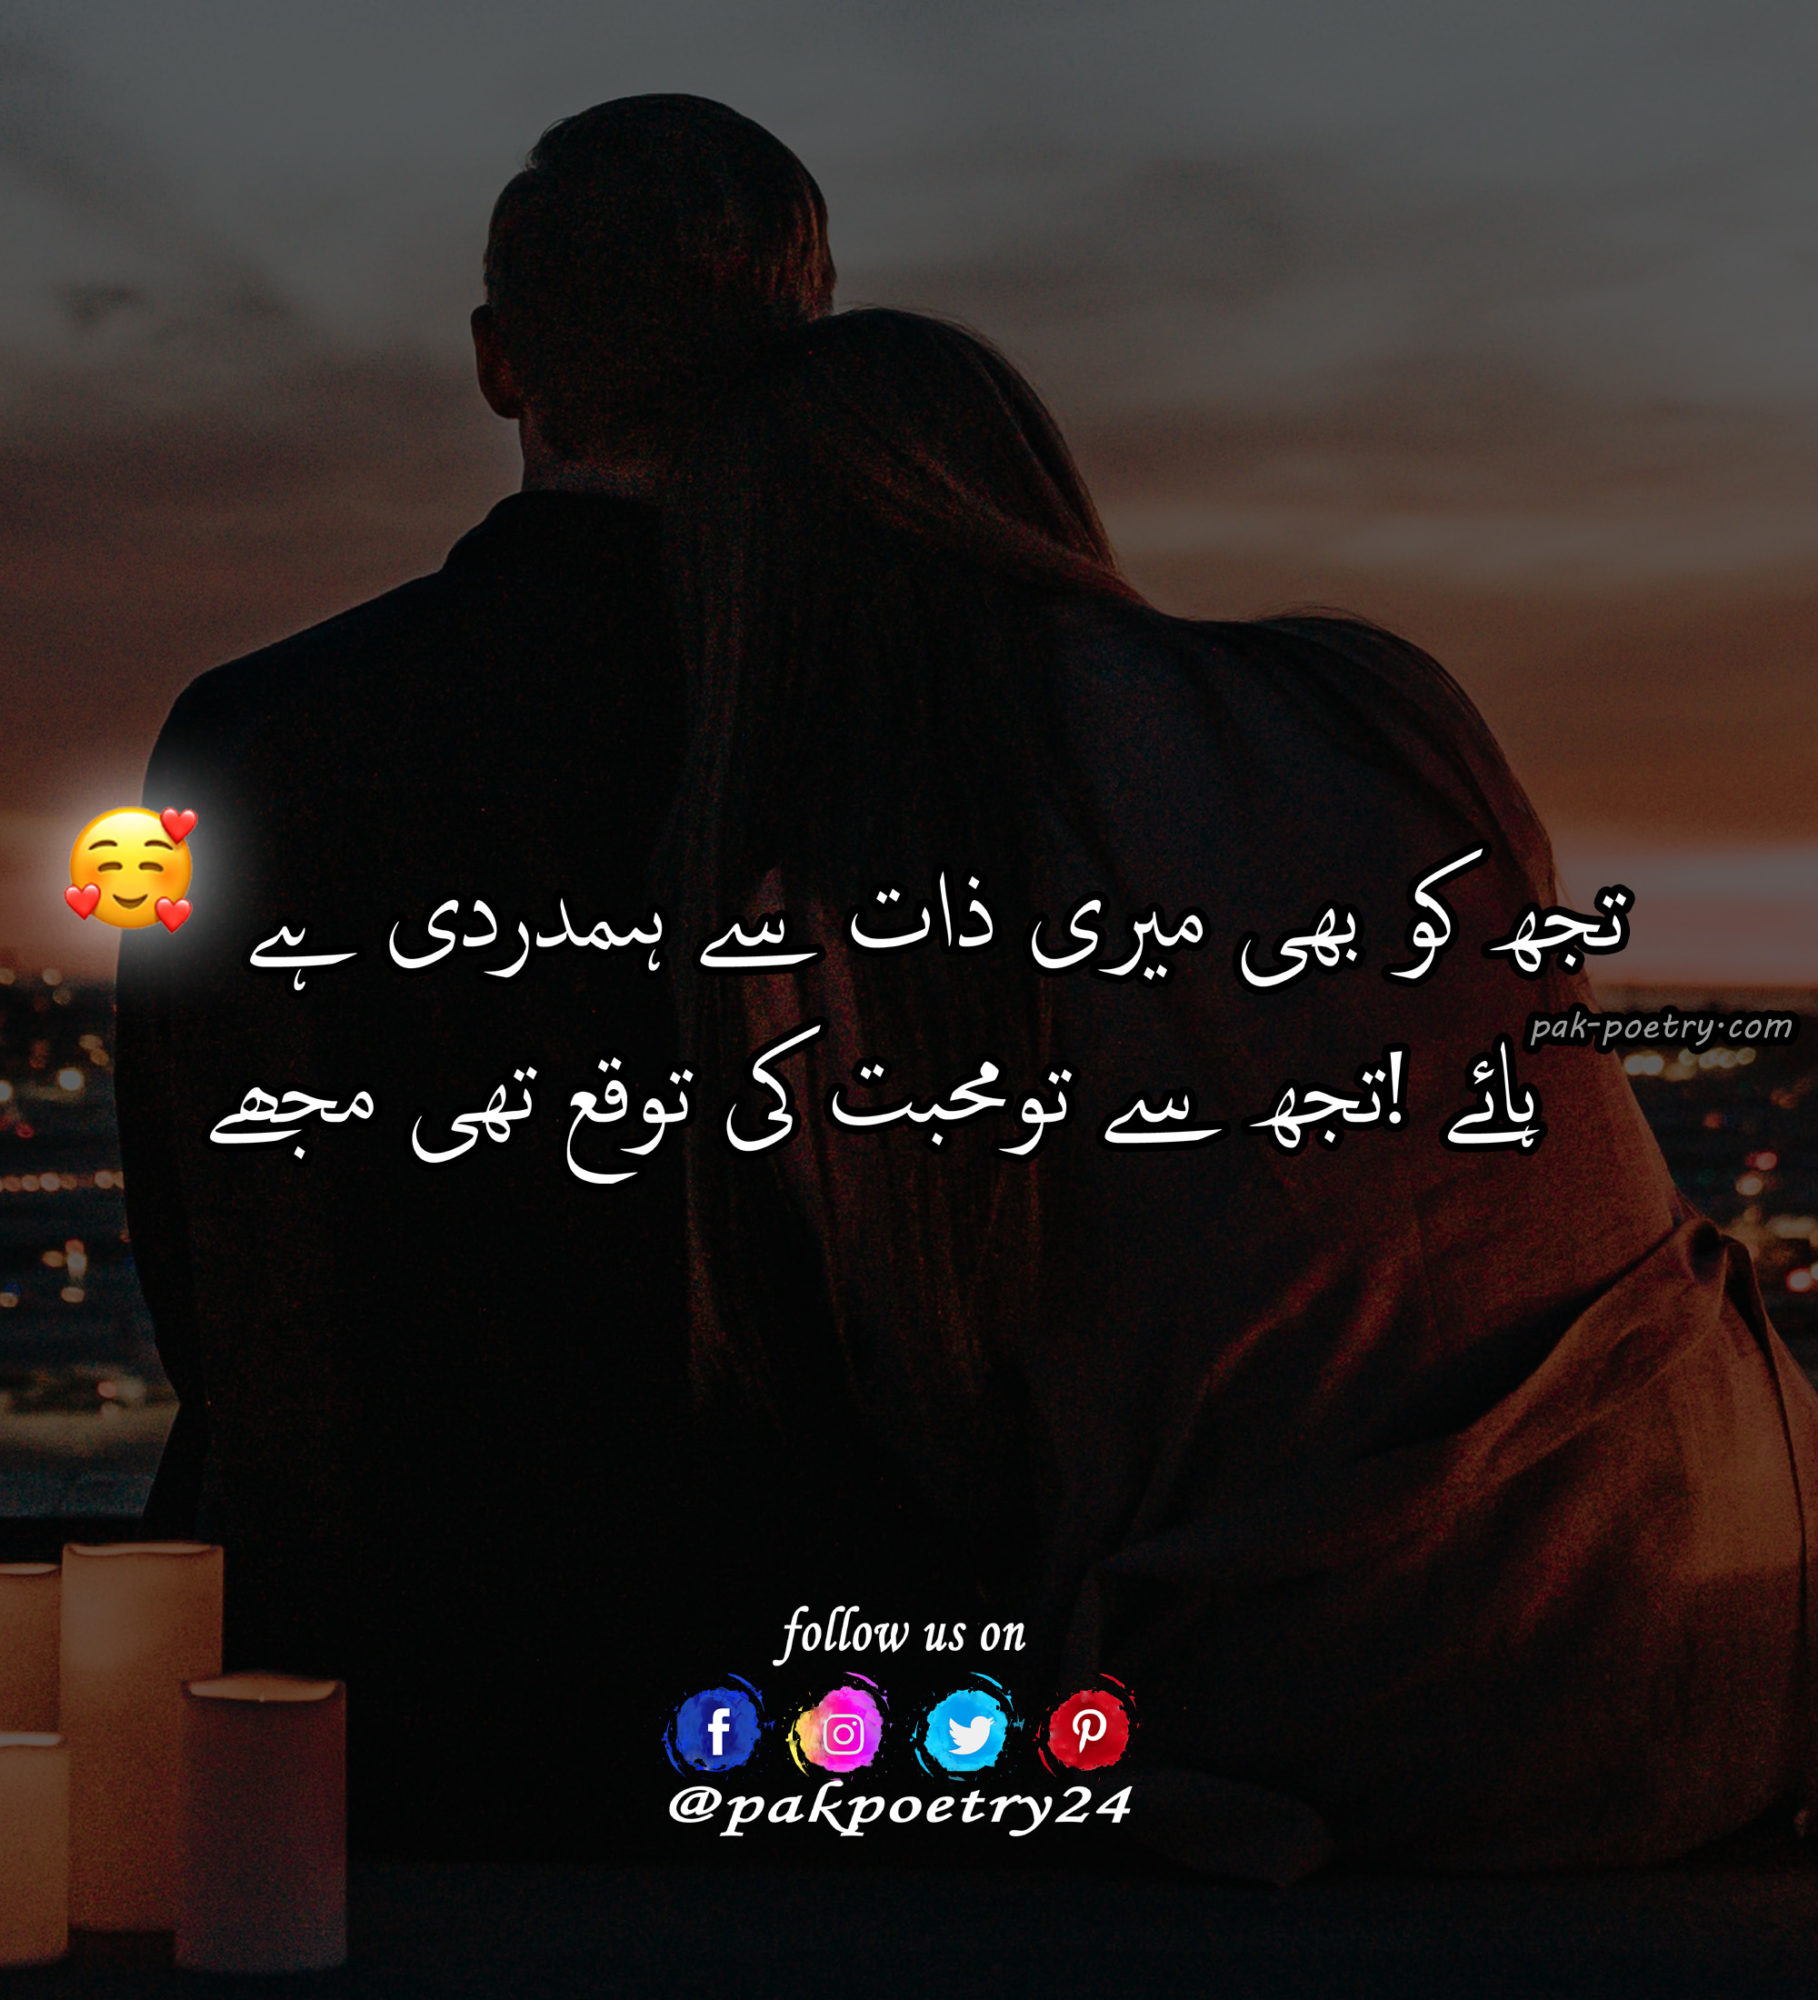 romantic poetry, urdu romantic poetry, romantic pics poetry, romantic love poetry, romantic poetry pics, Love poetry, love poetry in urdu, love poetry urdu, urdu love poetry, poetry love, love poetry pics, love poetries, lovepoetry, Poetry in urdu, urdu poetry, poetry urdu,